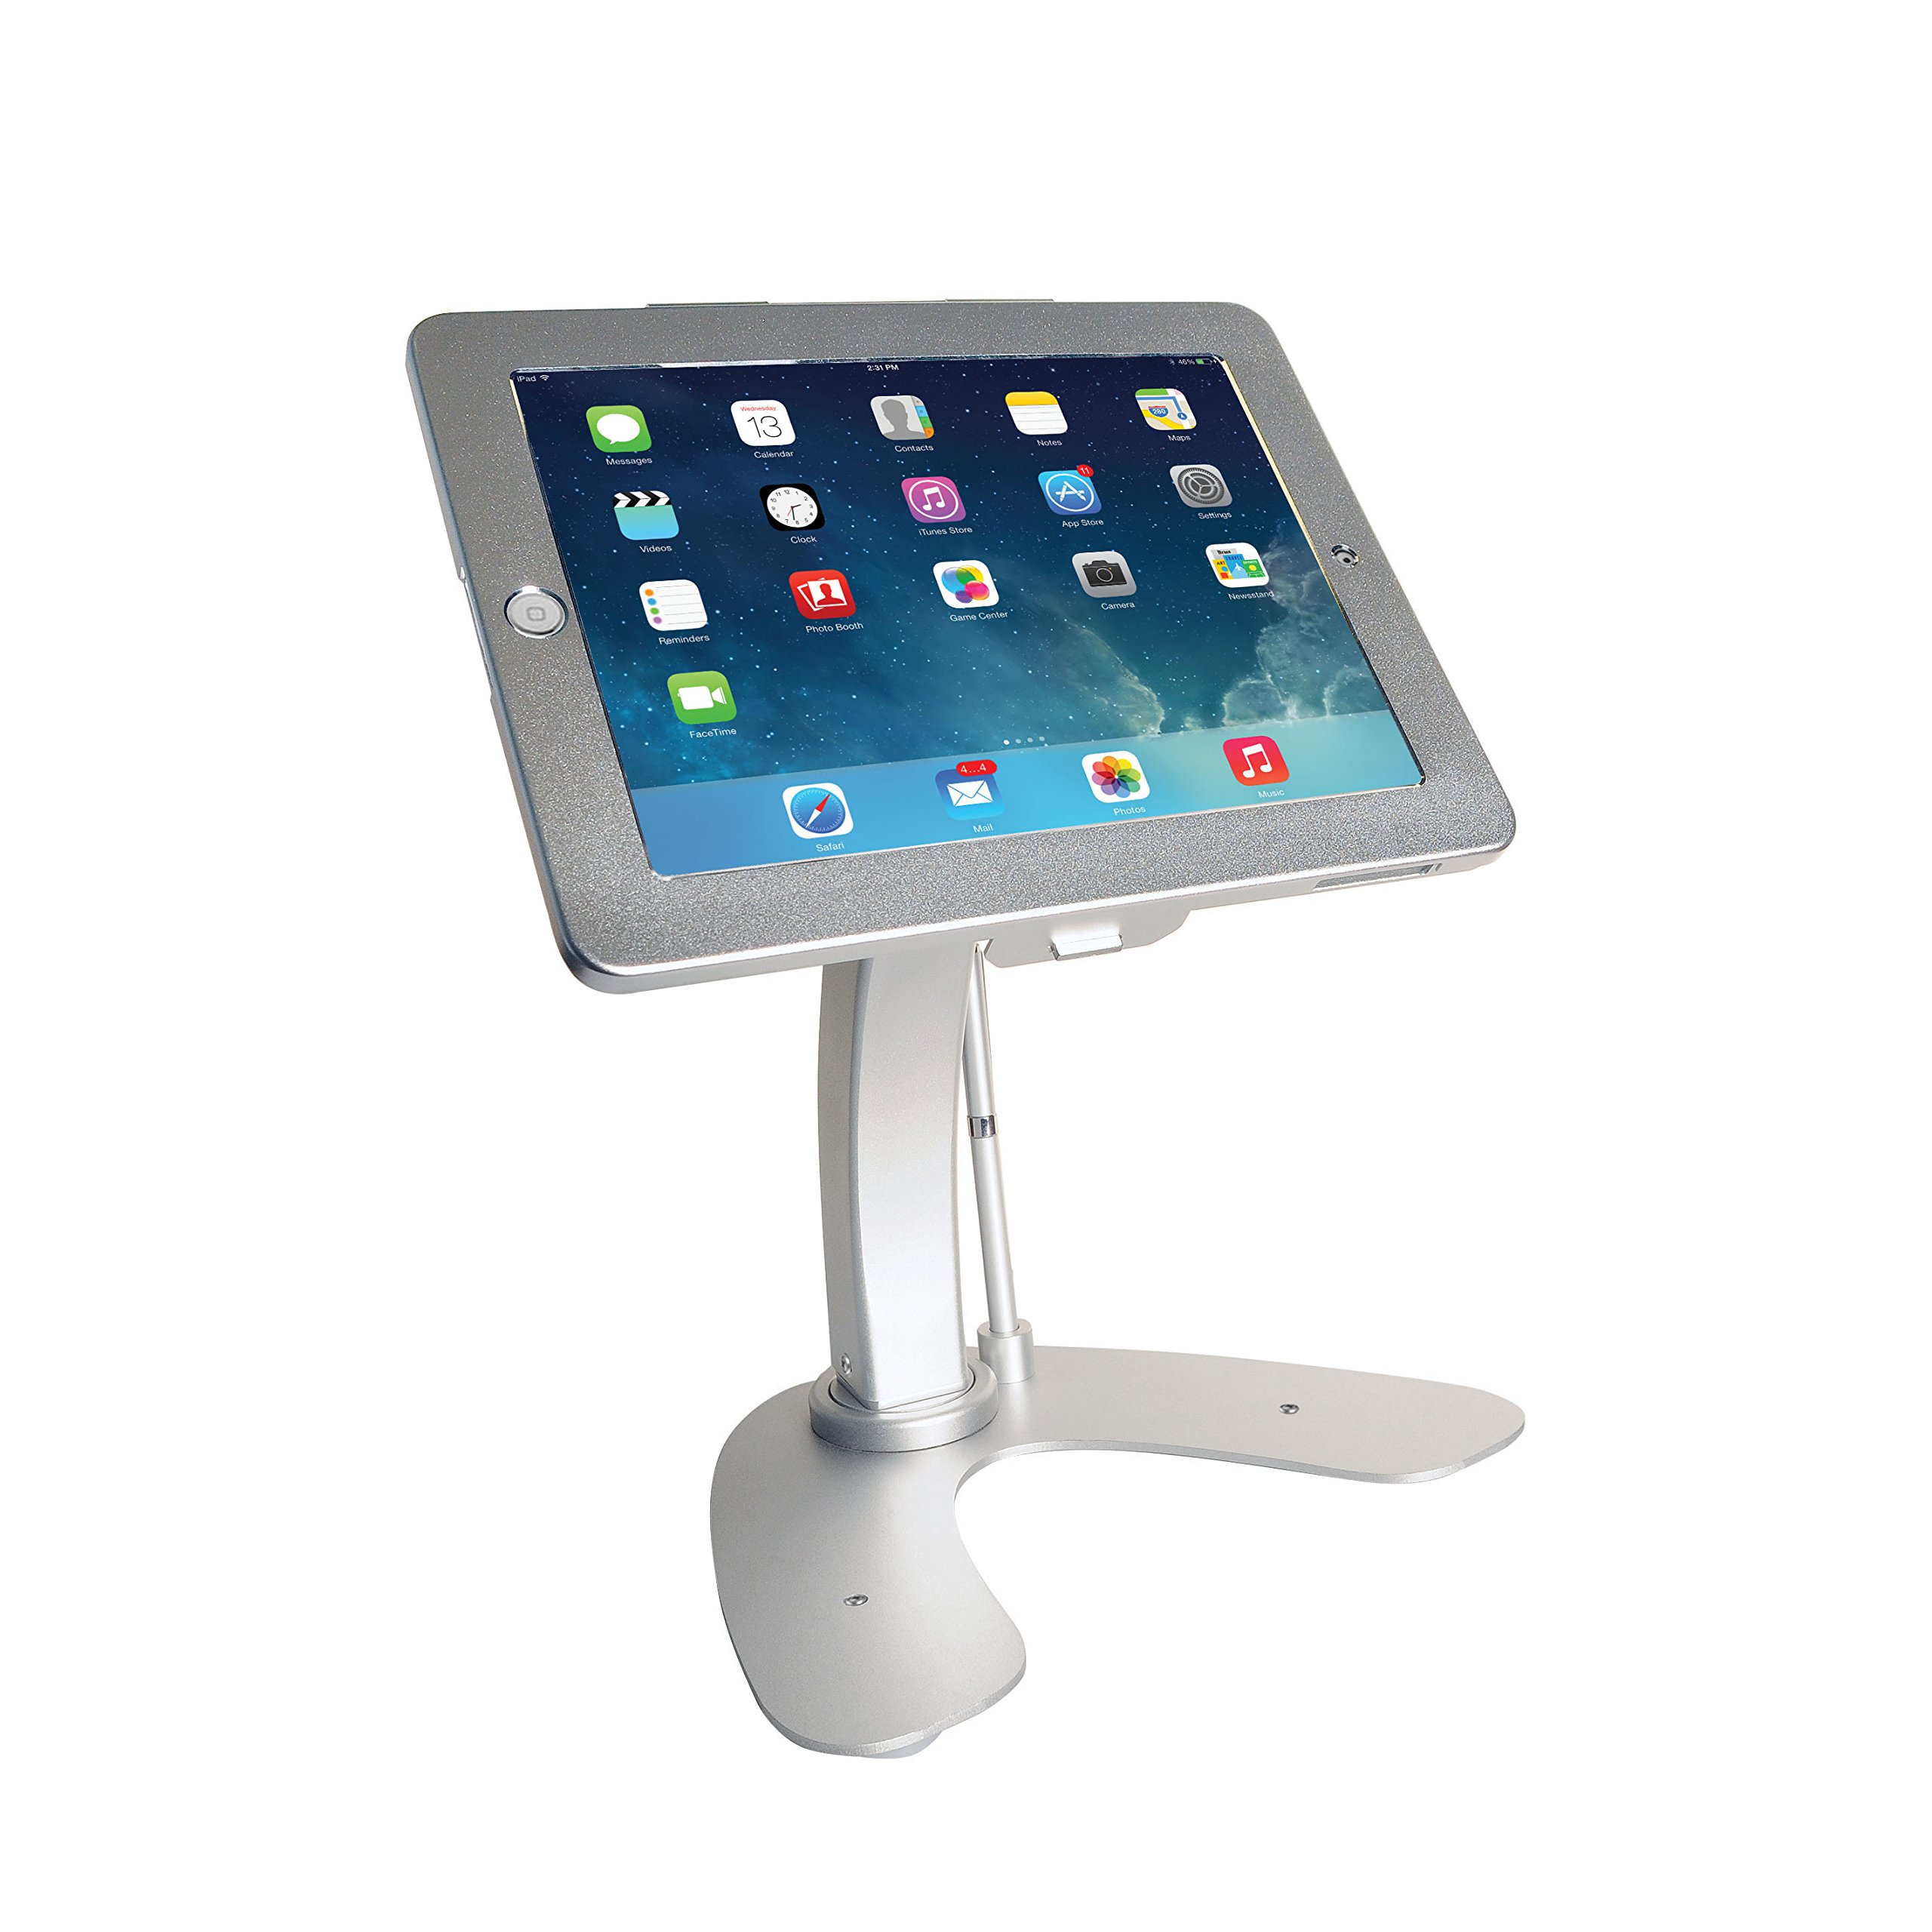 Anti-Theft Security Kiosk Stand for iPad (2017)/iPad Air/iPad Pro 9.7/iPad (2-4)